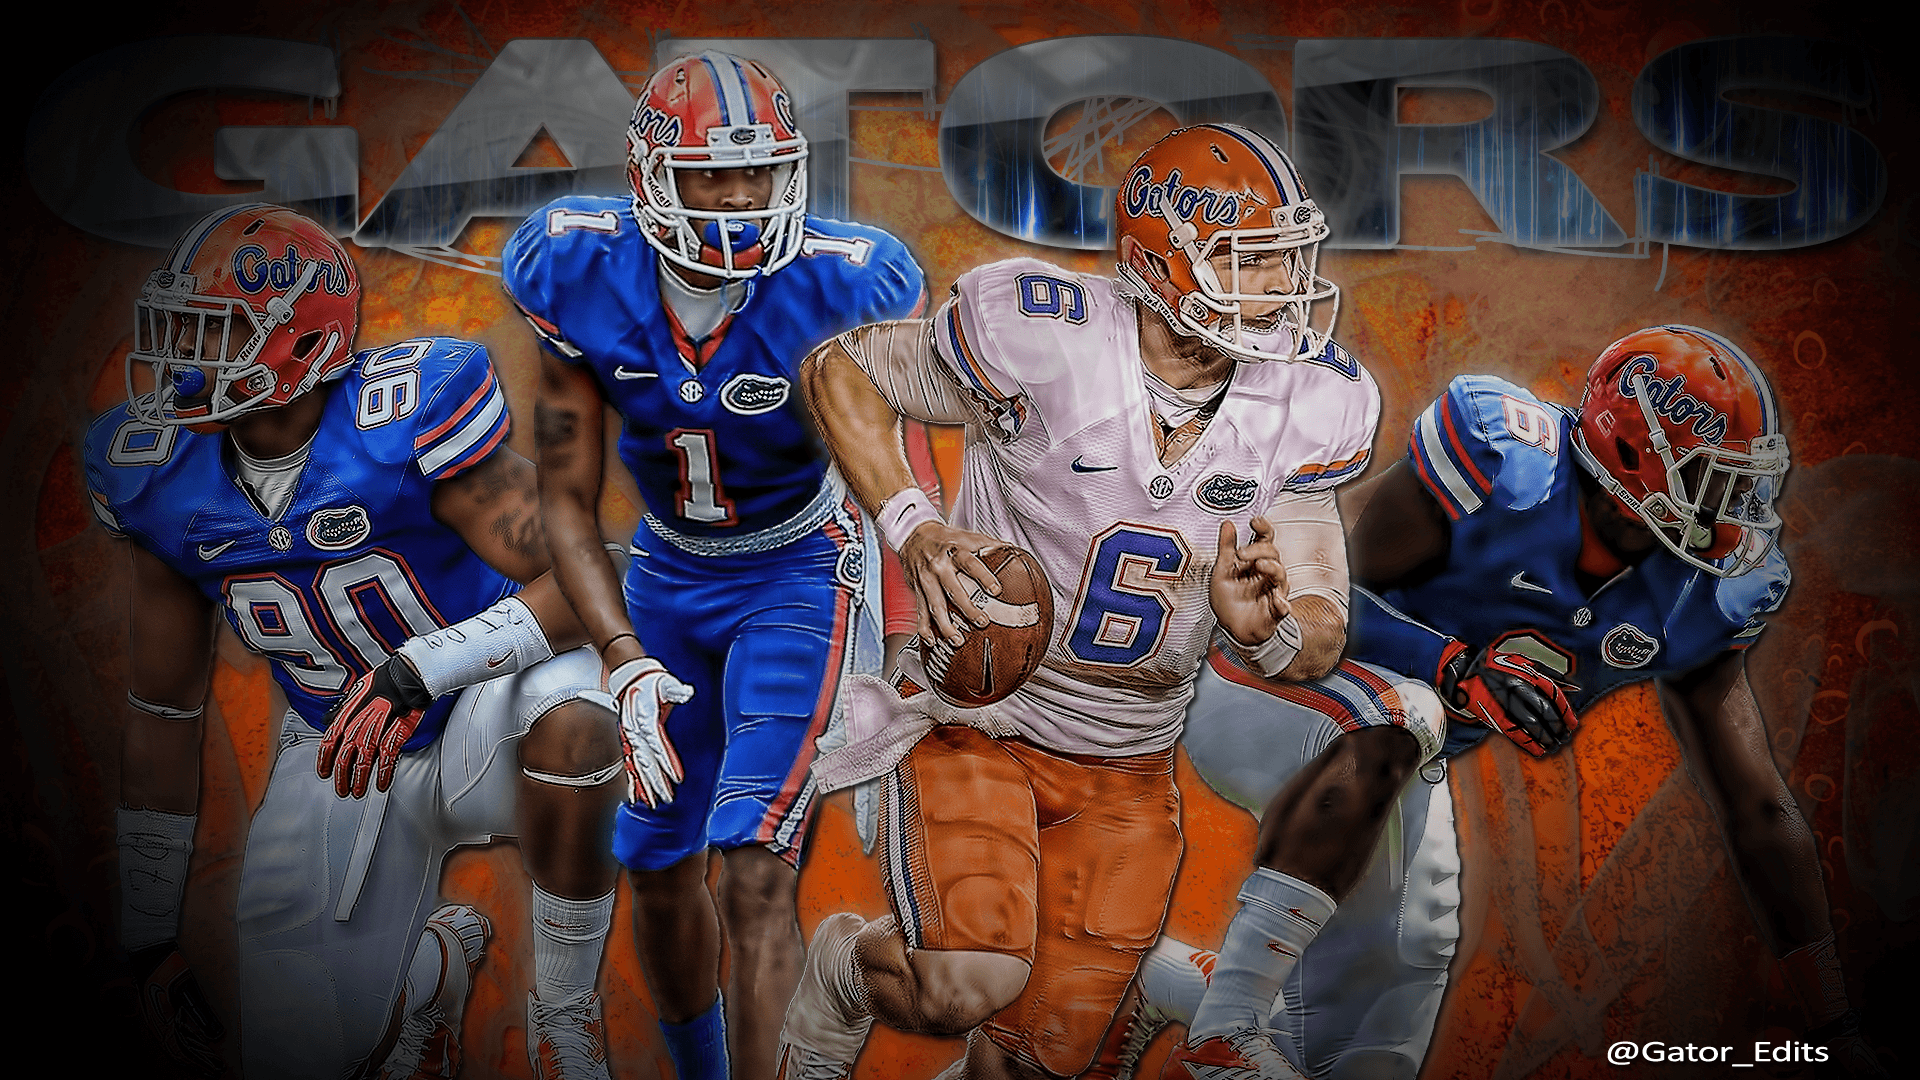 Florida Gators Backgrounds | Pixels Talk